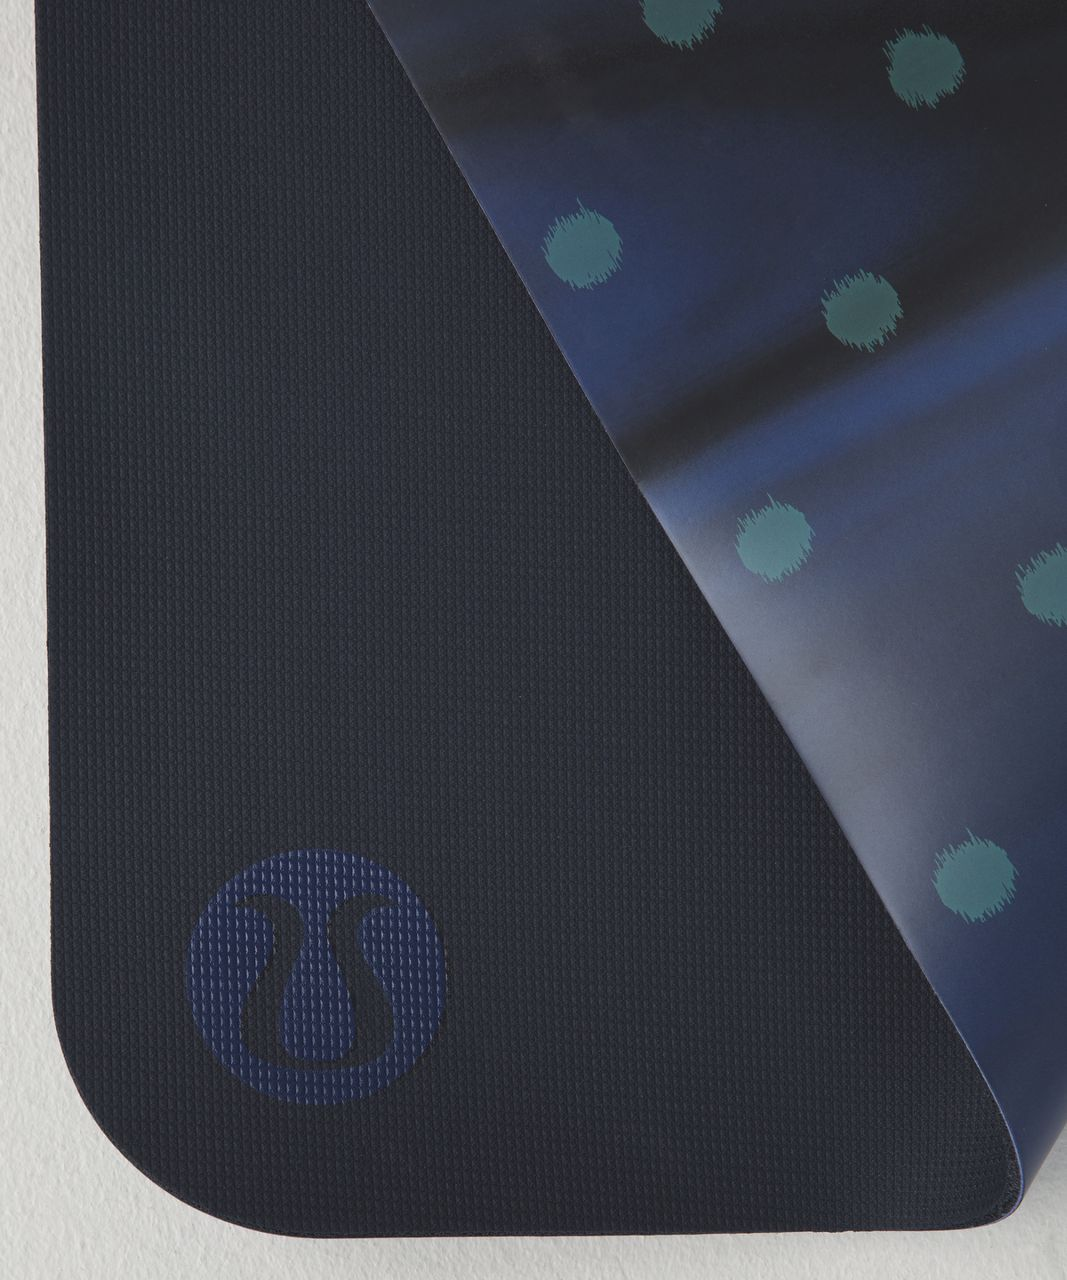 Lululemon The Reversible Mat 5mm - Simply Ghost Dot Arctic Teal Black / Naval Blue